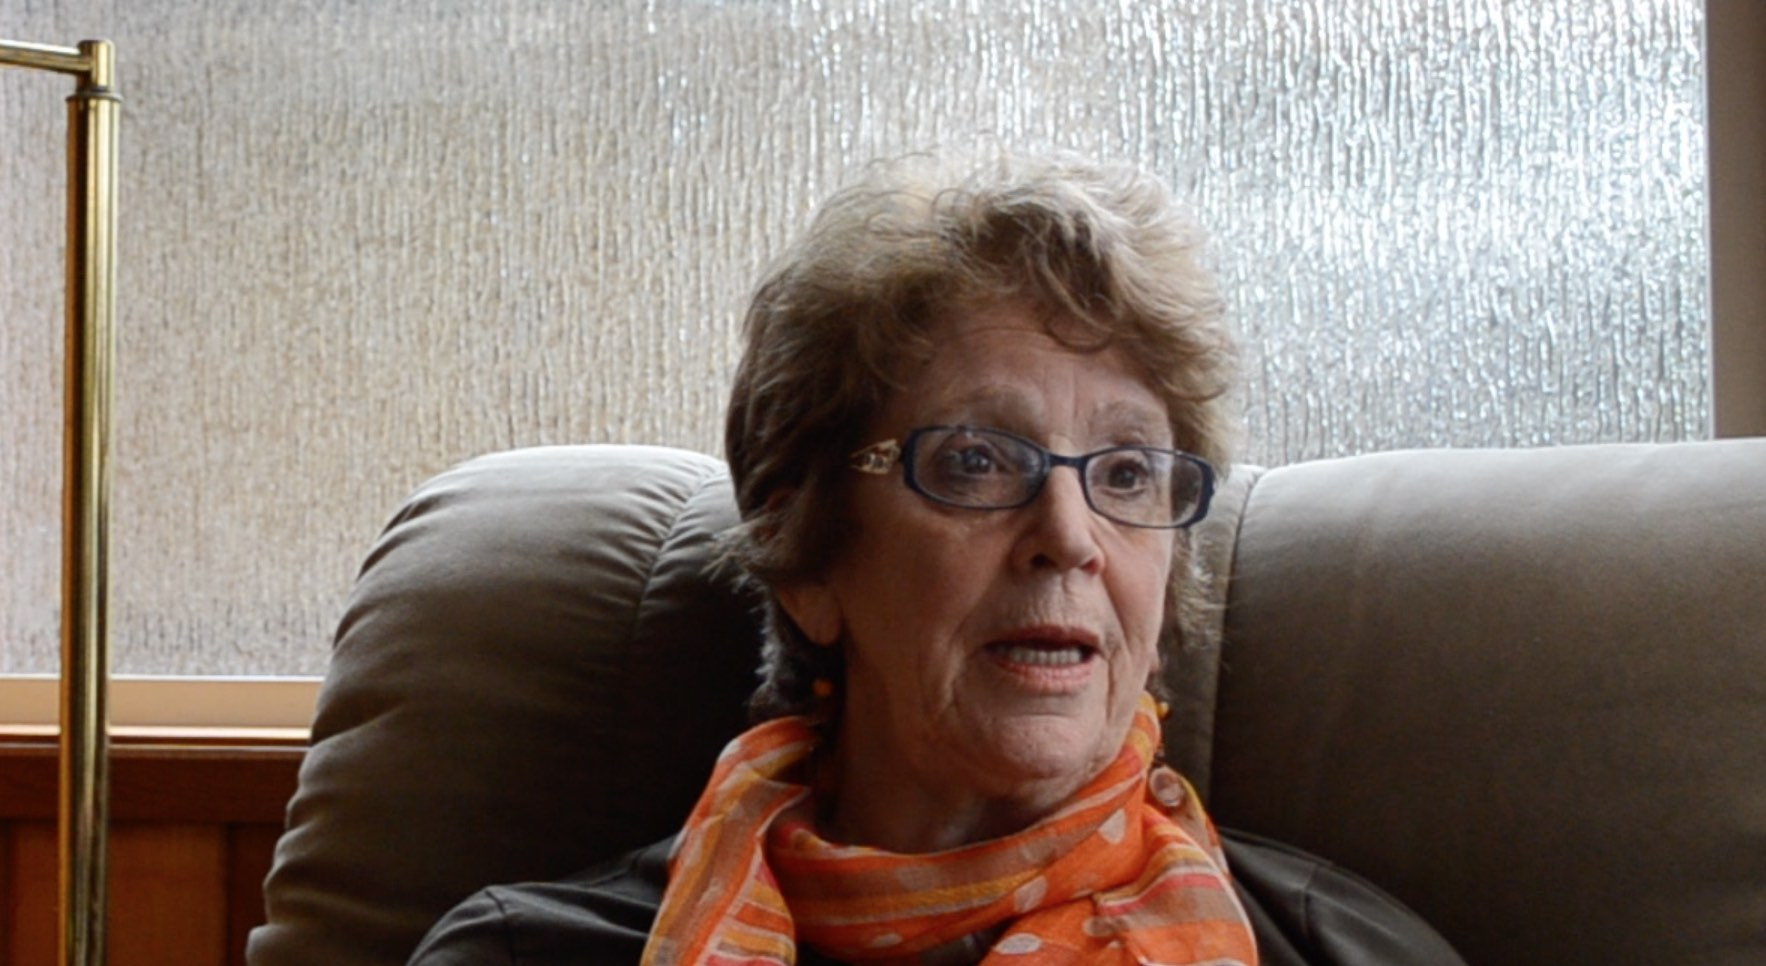 older woman with brown hair and glasses